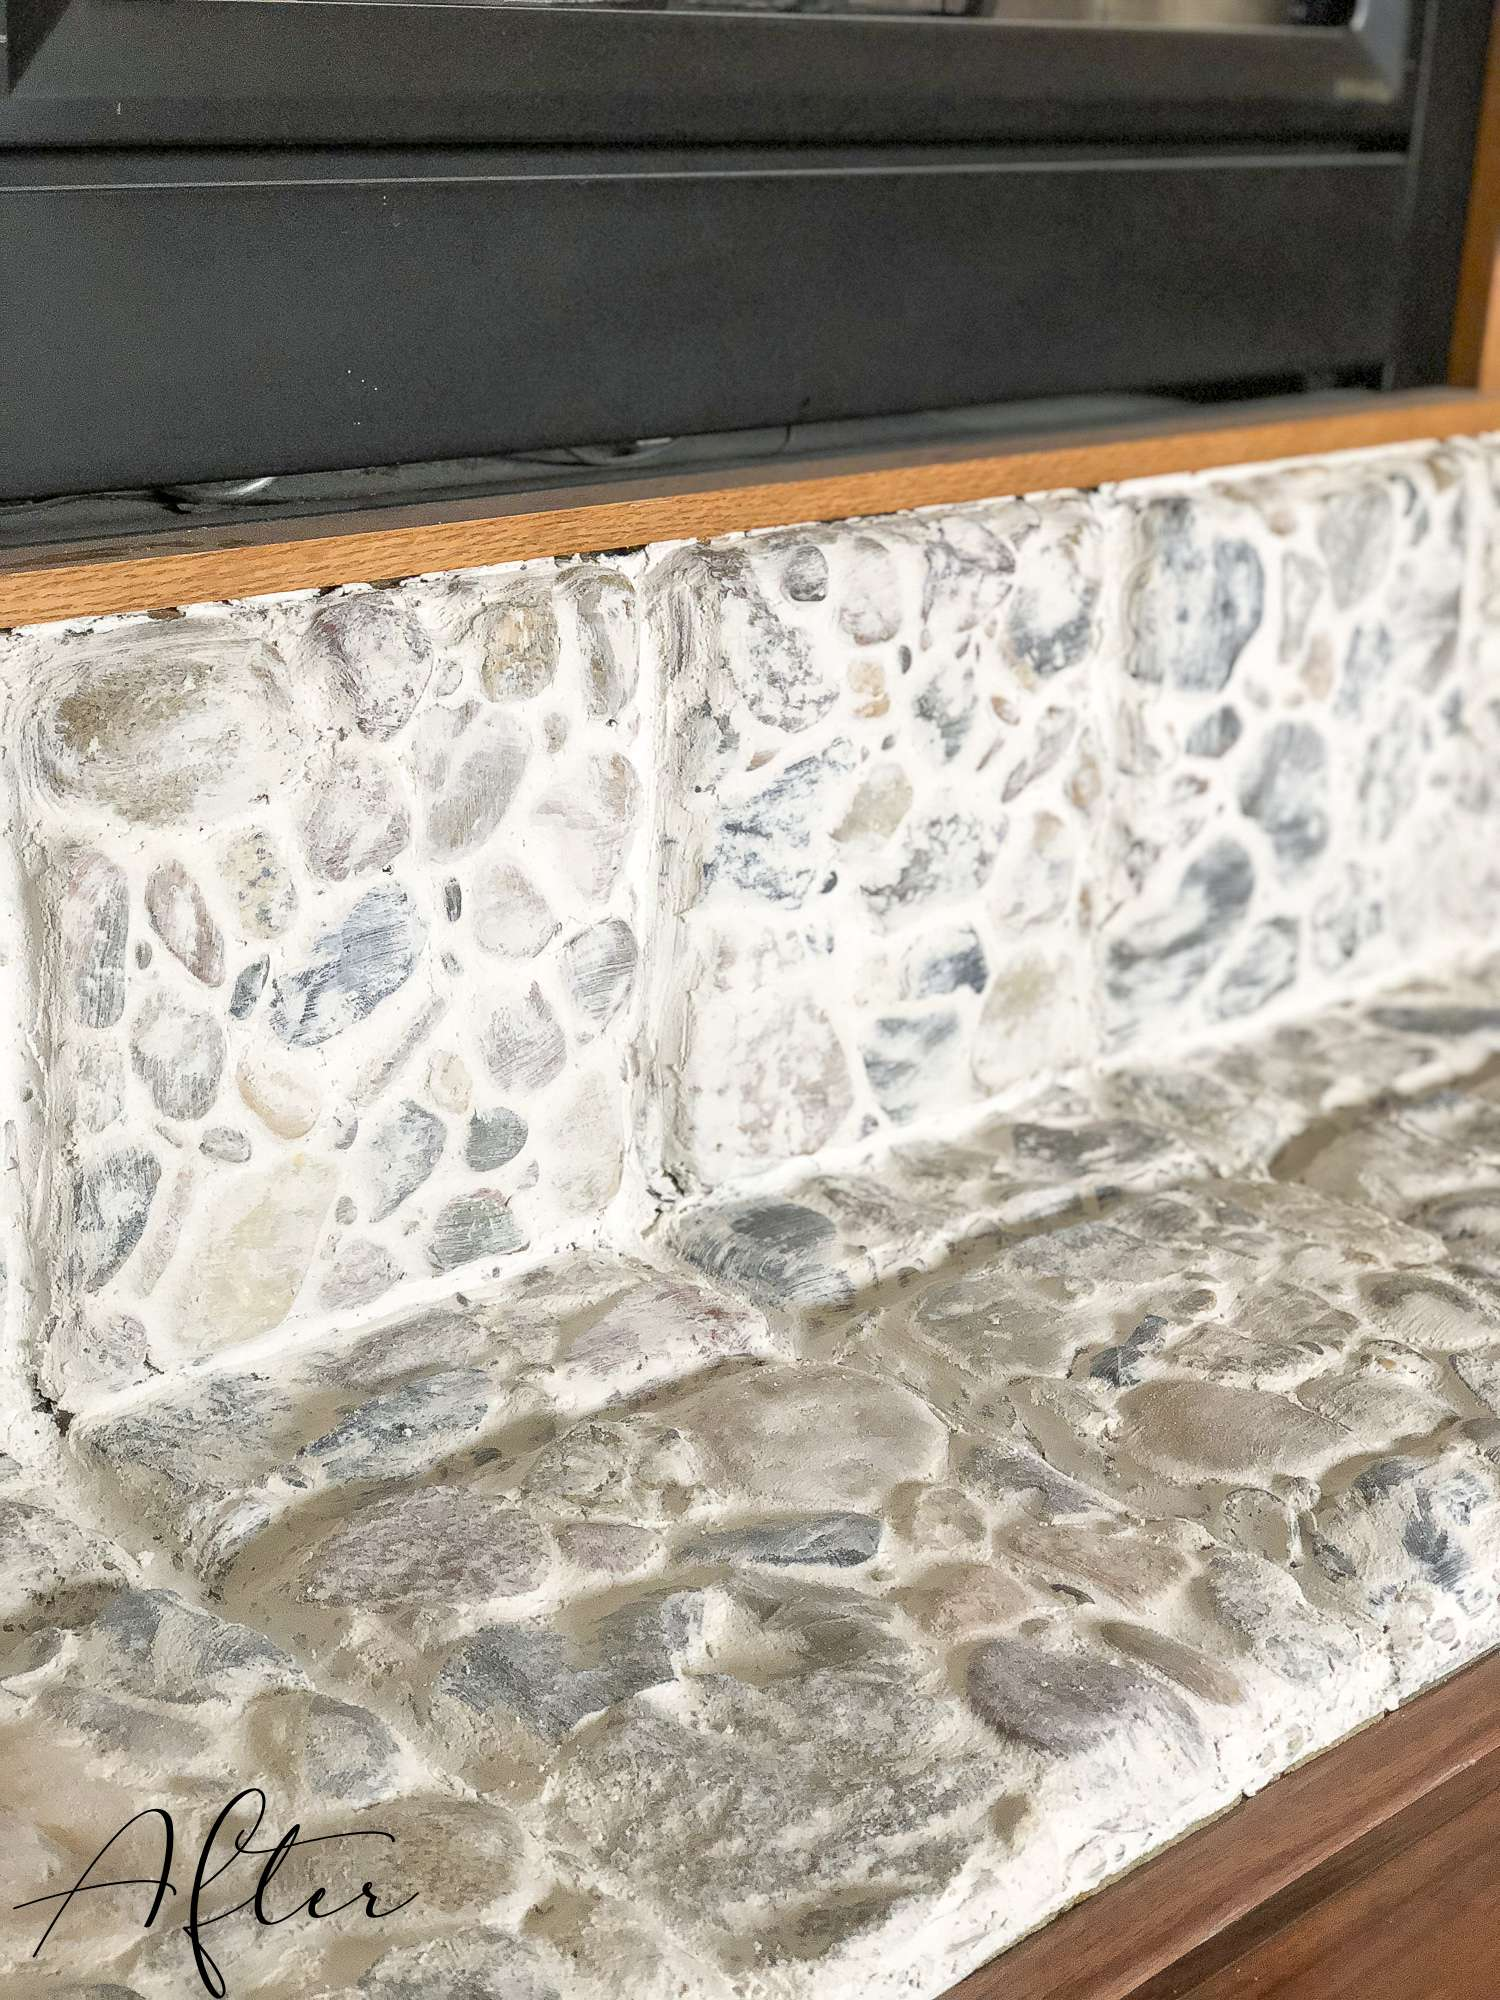 Are you looking for an easy way to update a river rock hearth? Try the german schmear technique to transform outdated rock to beautiful European country style. #germanschmear #fireplace #diyfireplace